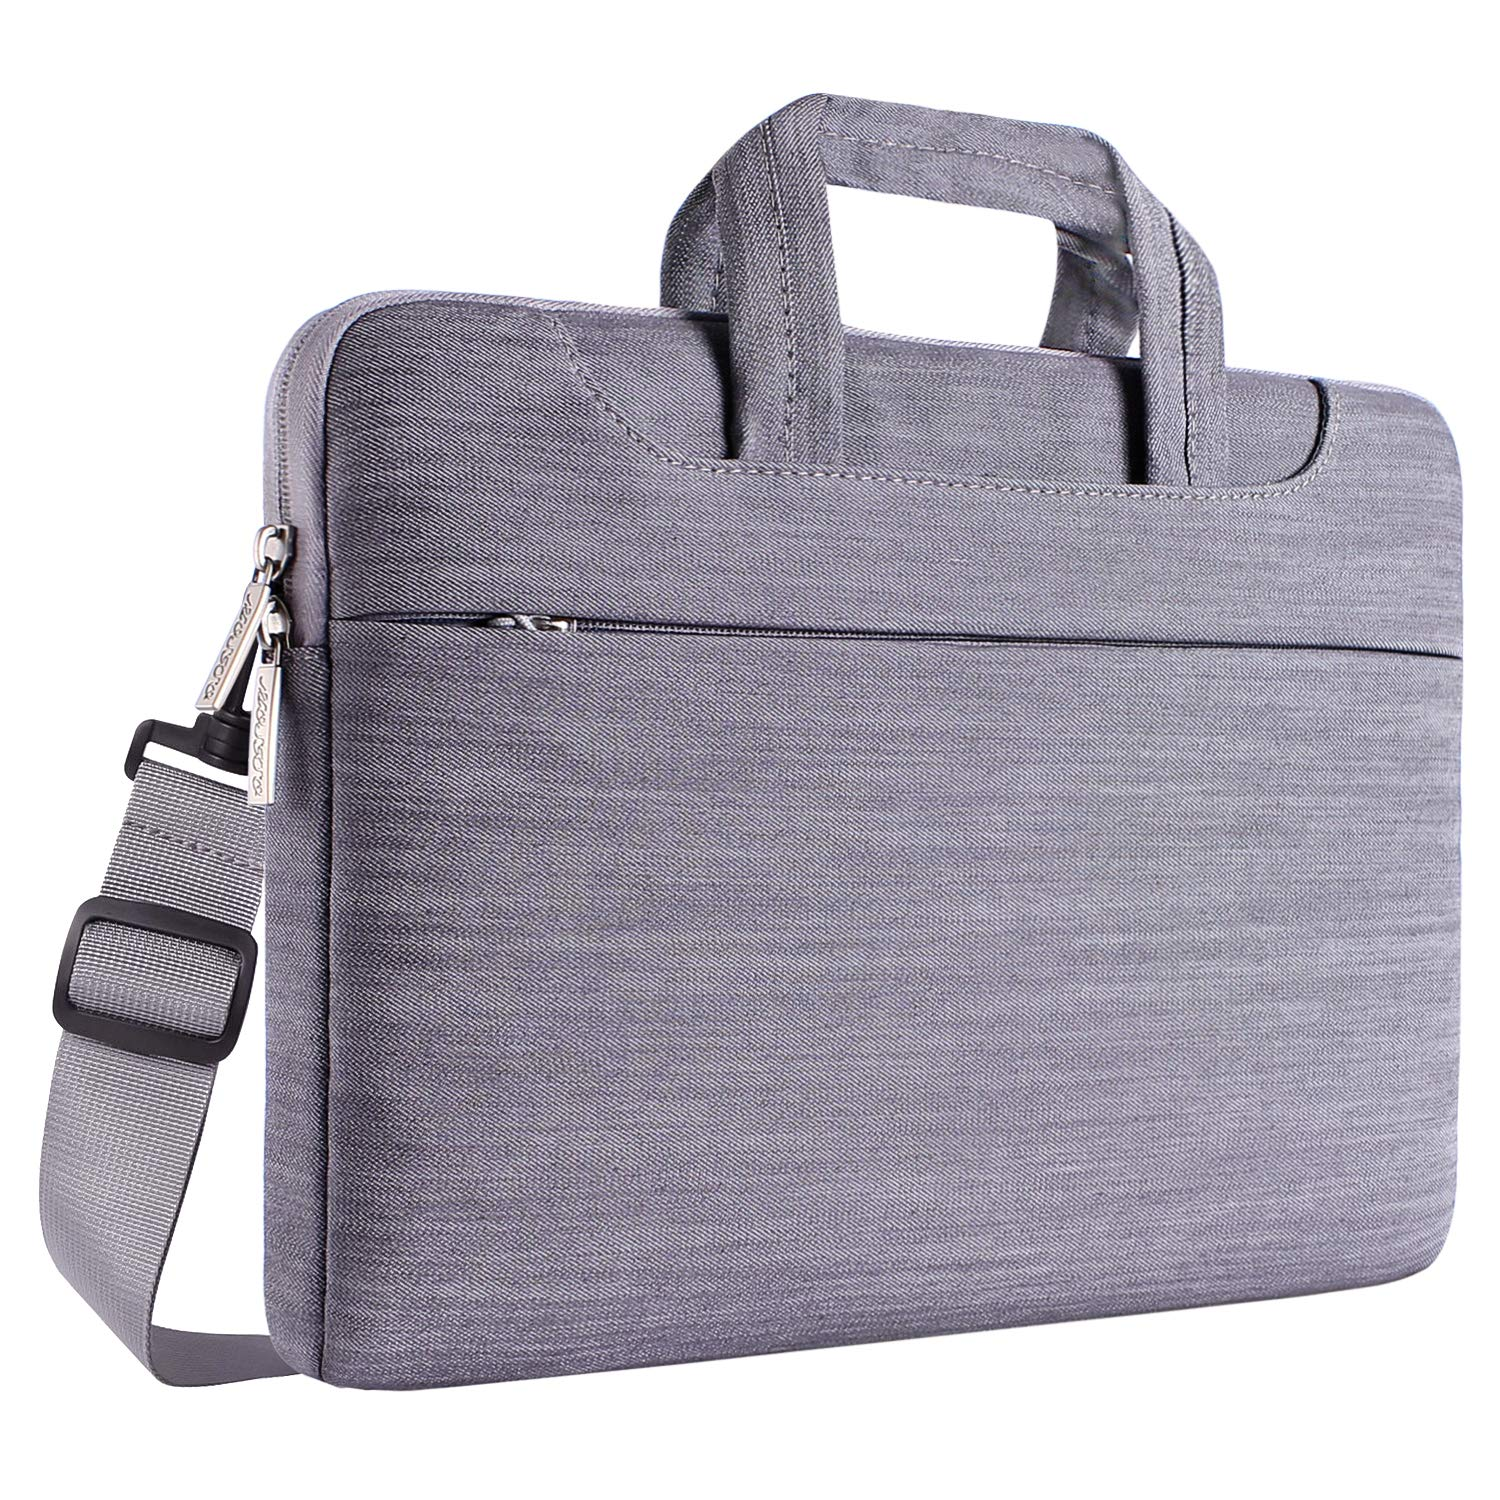 MOSISO Laptop Shoulder Bag Compatible 15-15.6 Inch New MacBook Pro with Touch Bar A1990 & A1707 2018 2017 2016, MacBook Pro, Also Compatible 14 Inch Ultrabook, Denim Briefcase Sleeve, Gray